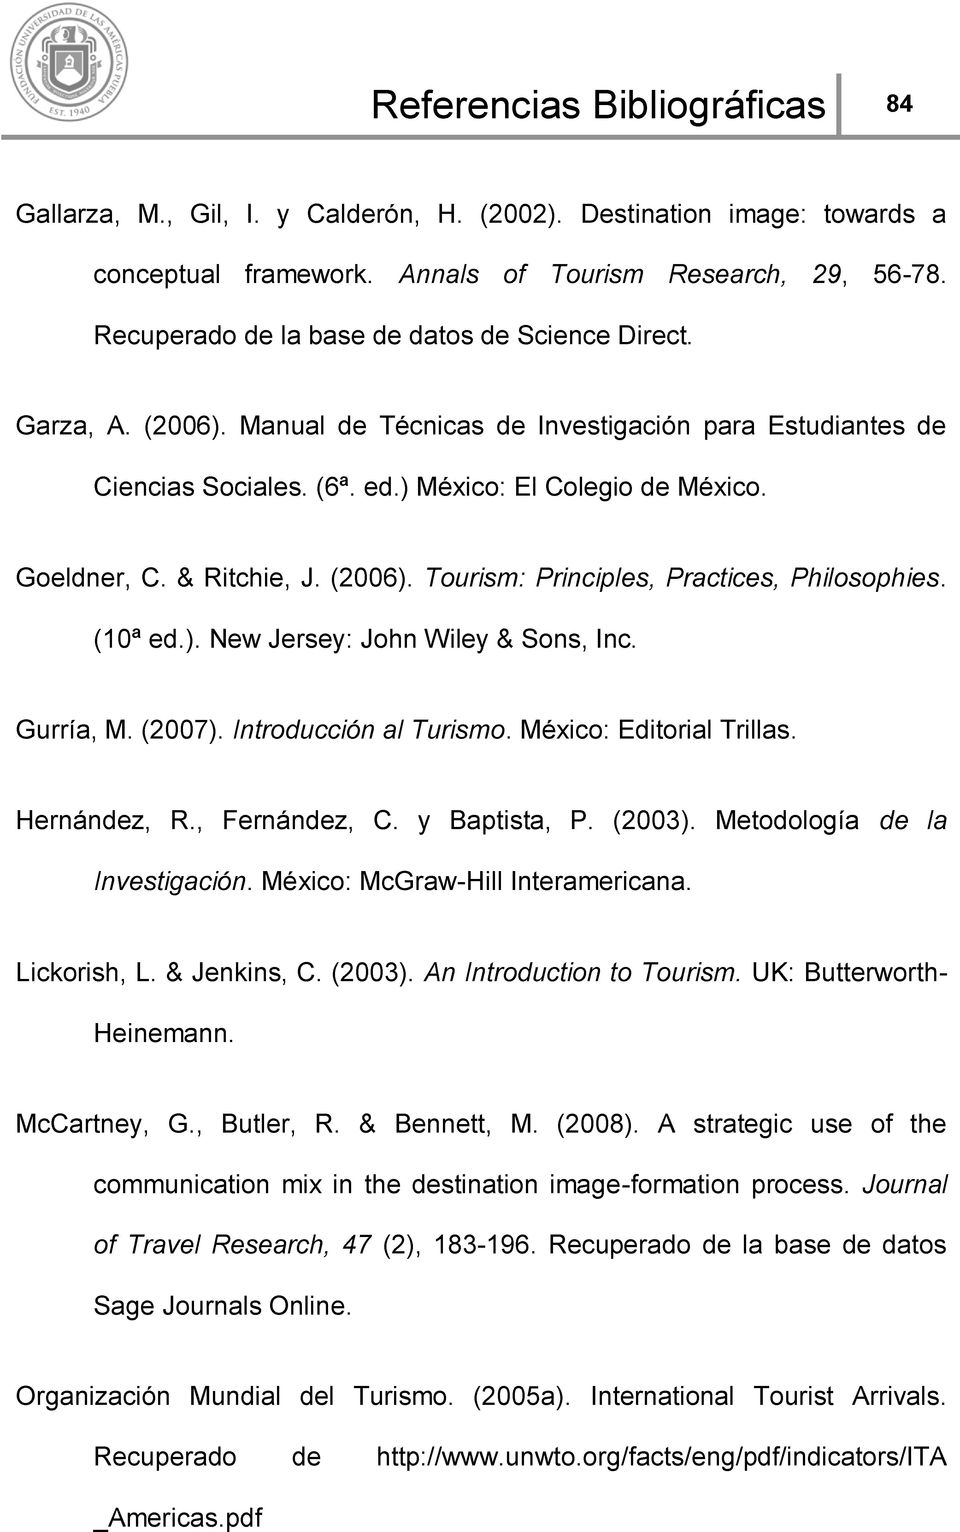 & Ritchie, J. (2006). Tourism: Principles, Practices, Philosophies. (10ª ed.). New Jersey: John Wiley & Sons, Inc. Gurría, M. (2007). Introducción al Turismo. México: Editorial Trillas. Hernández, R.